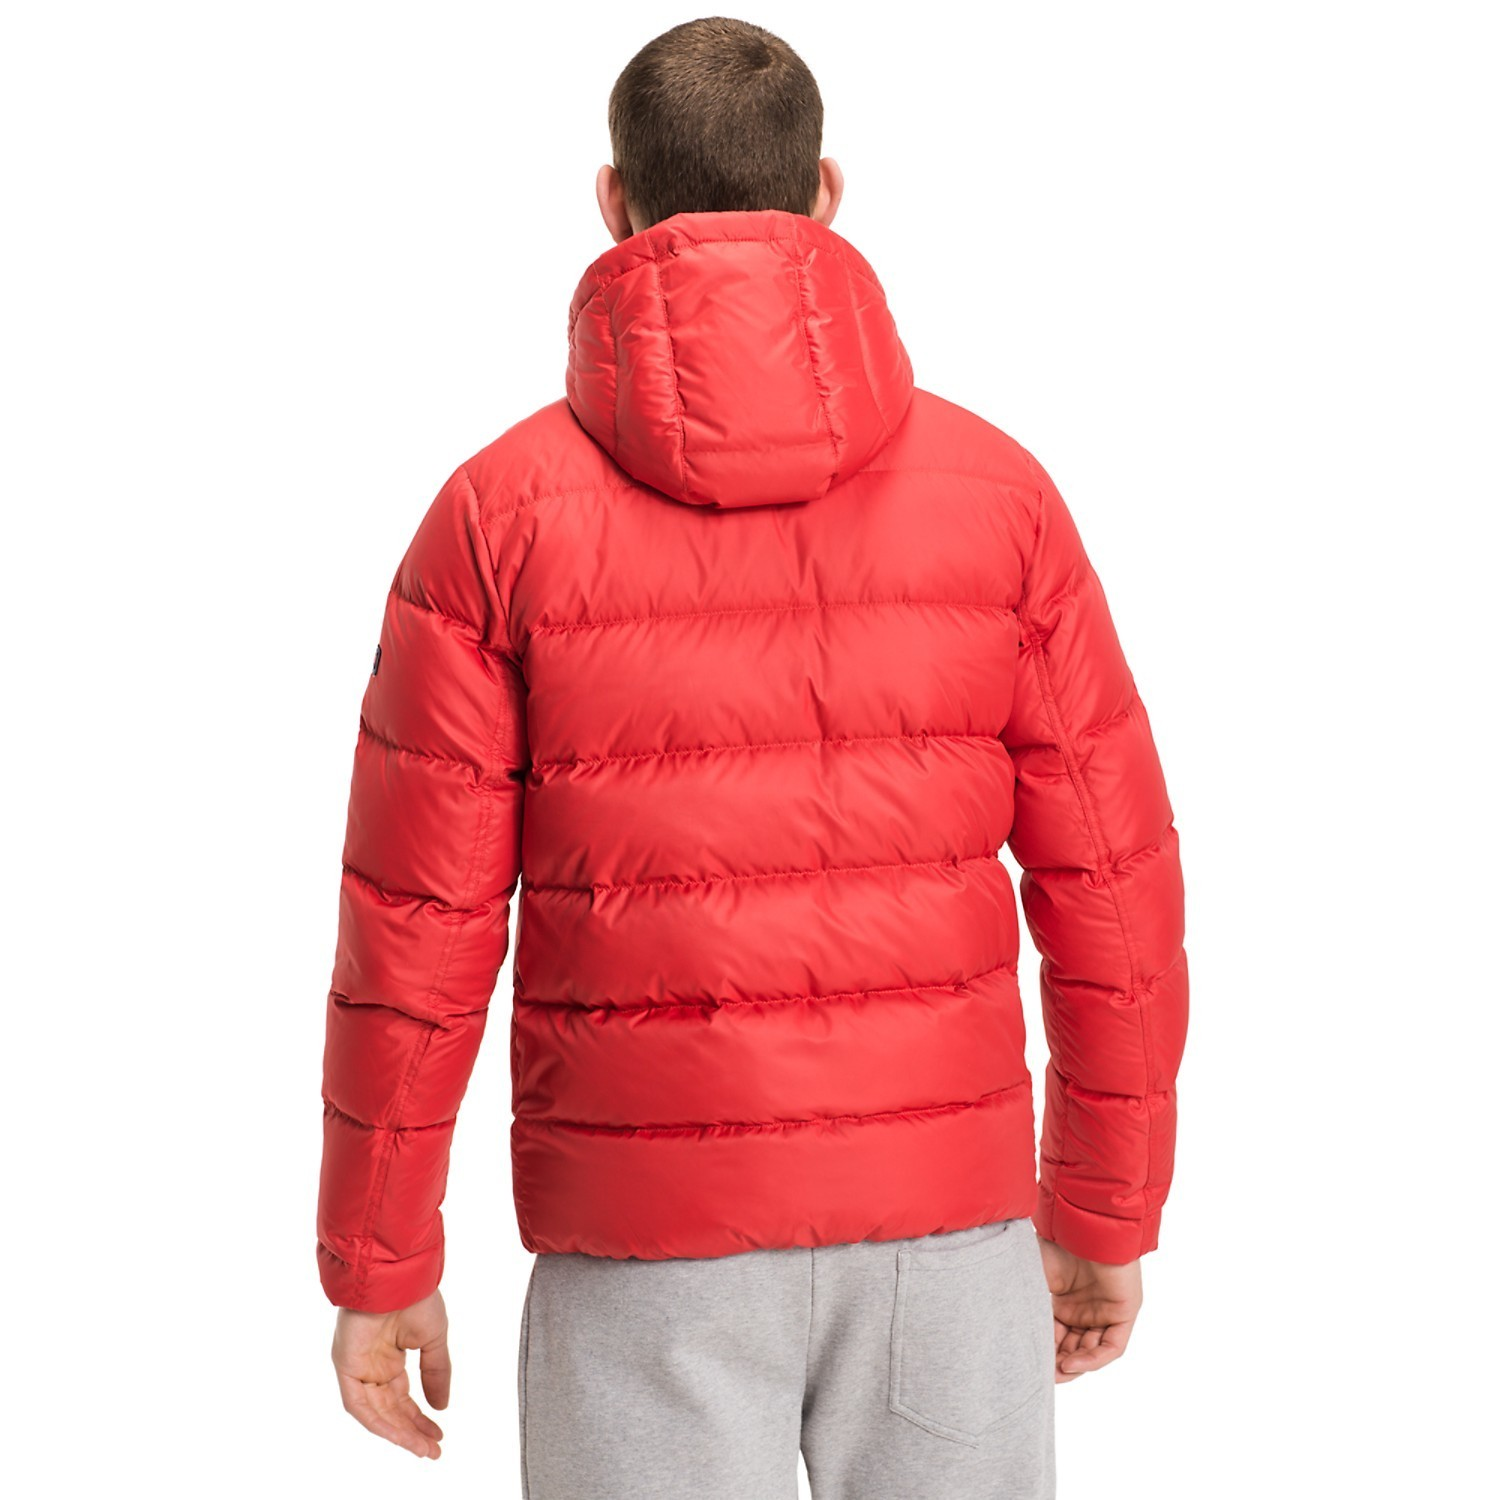 【Tommy Hilfiger 】QUILTED DOWN JACKET 袖ロゴ